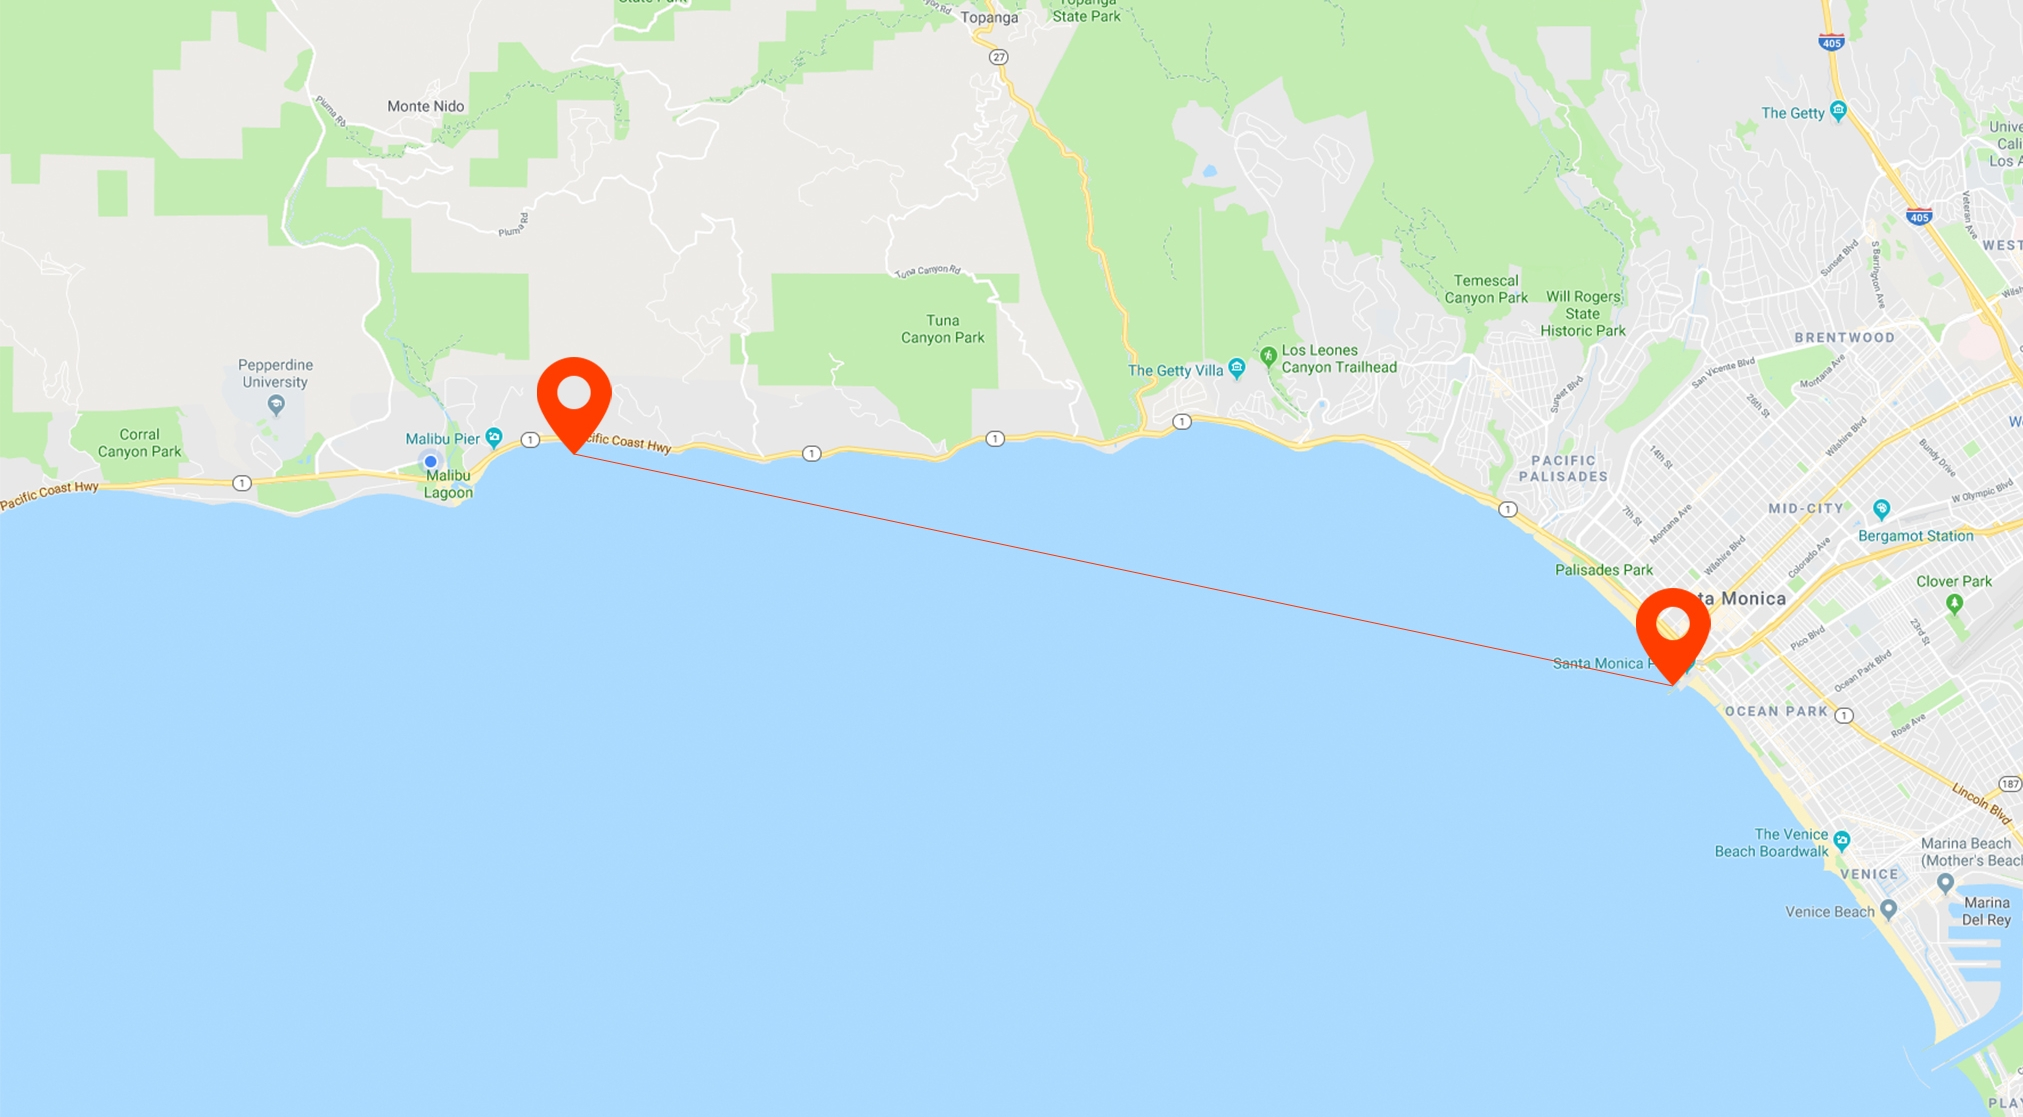 The proposed route of a ferry from Santa Monica to Malibu.